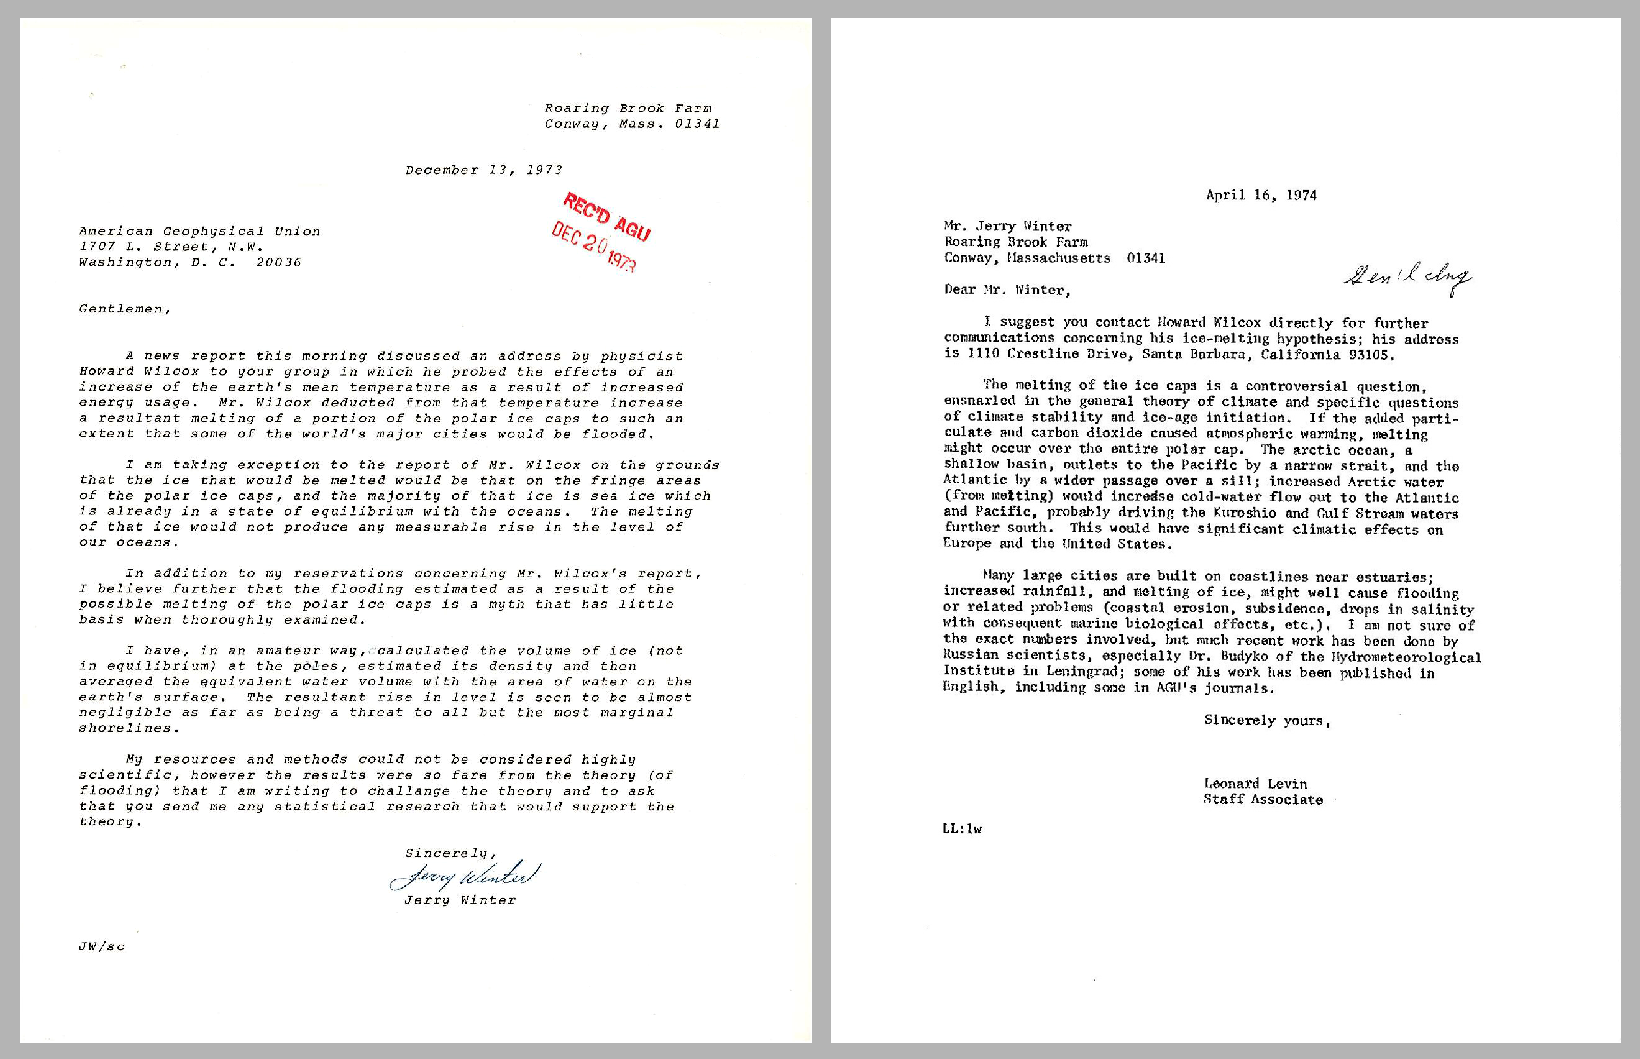 December 1973 letter from Jerry Winter to AGU challenging the idea that melting polar ice caps would cause flooding around the globe (left). April 1974 letter from AGU to Jerry Winter providing contact information for a scientist (right).